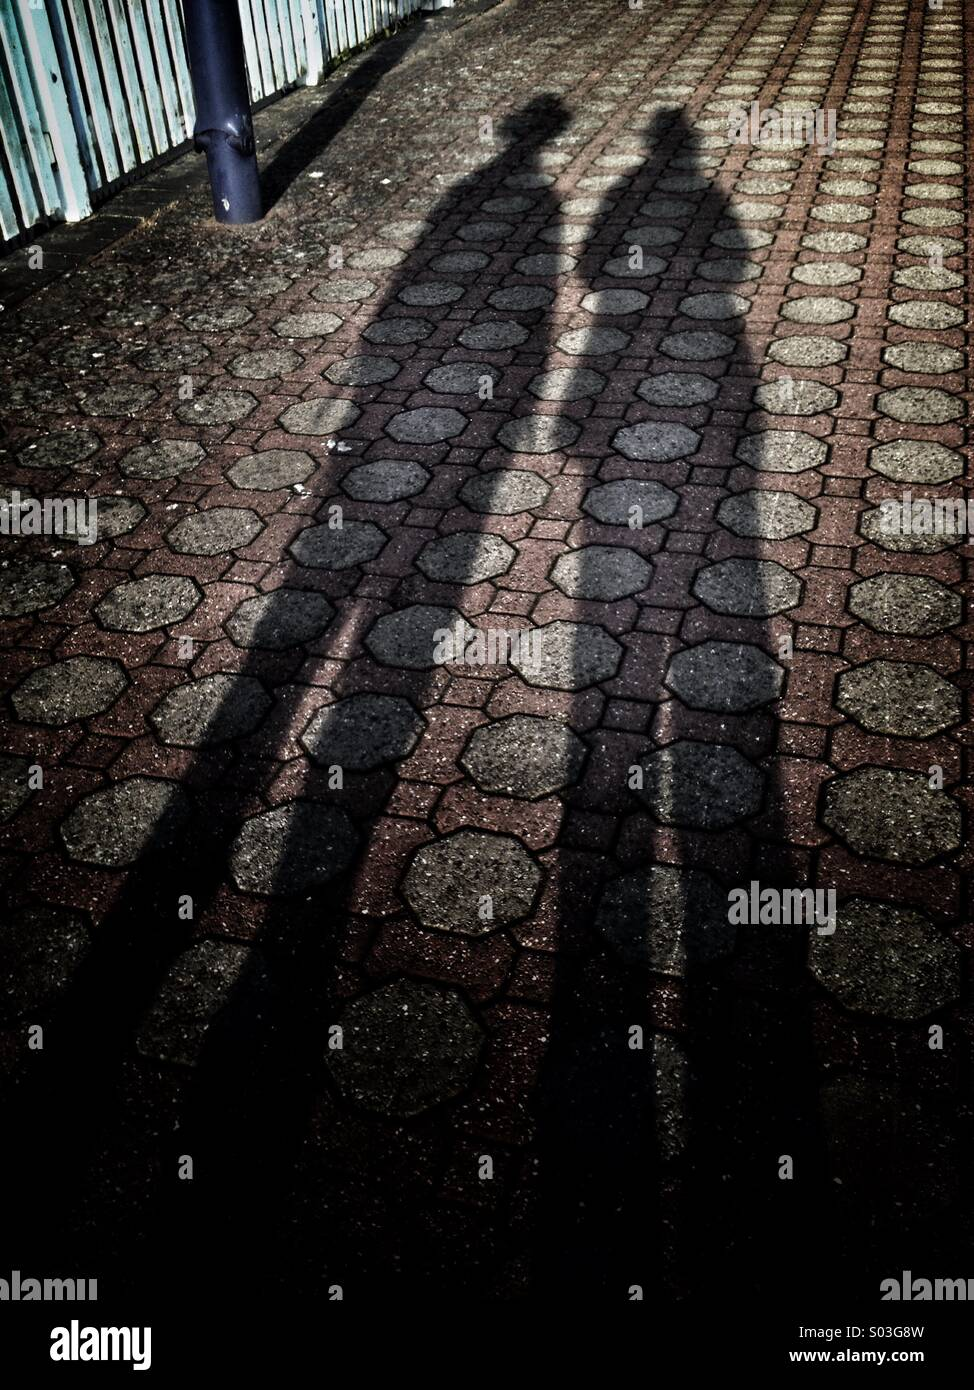 Shadowy pair - Stock Image